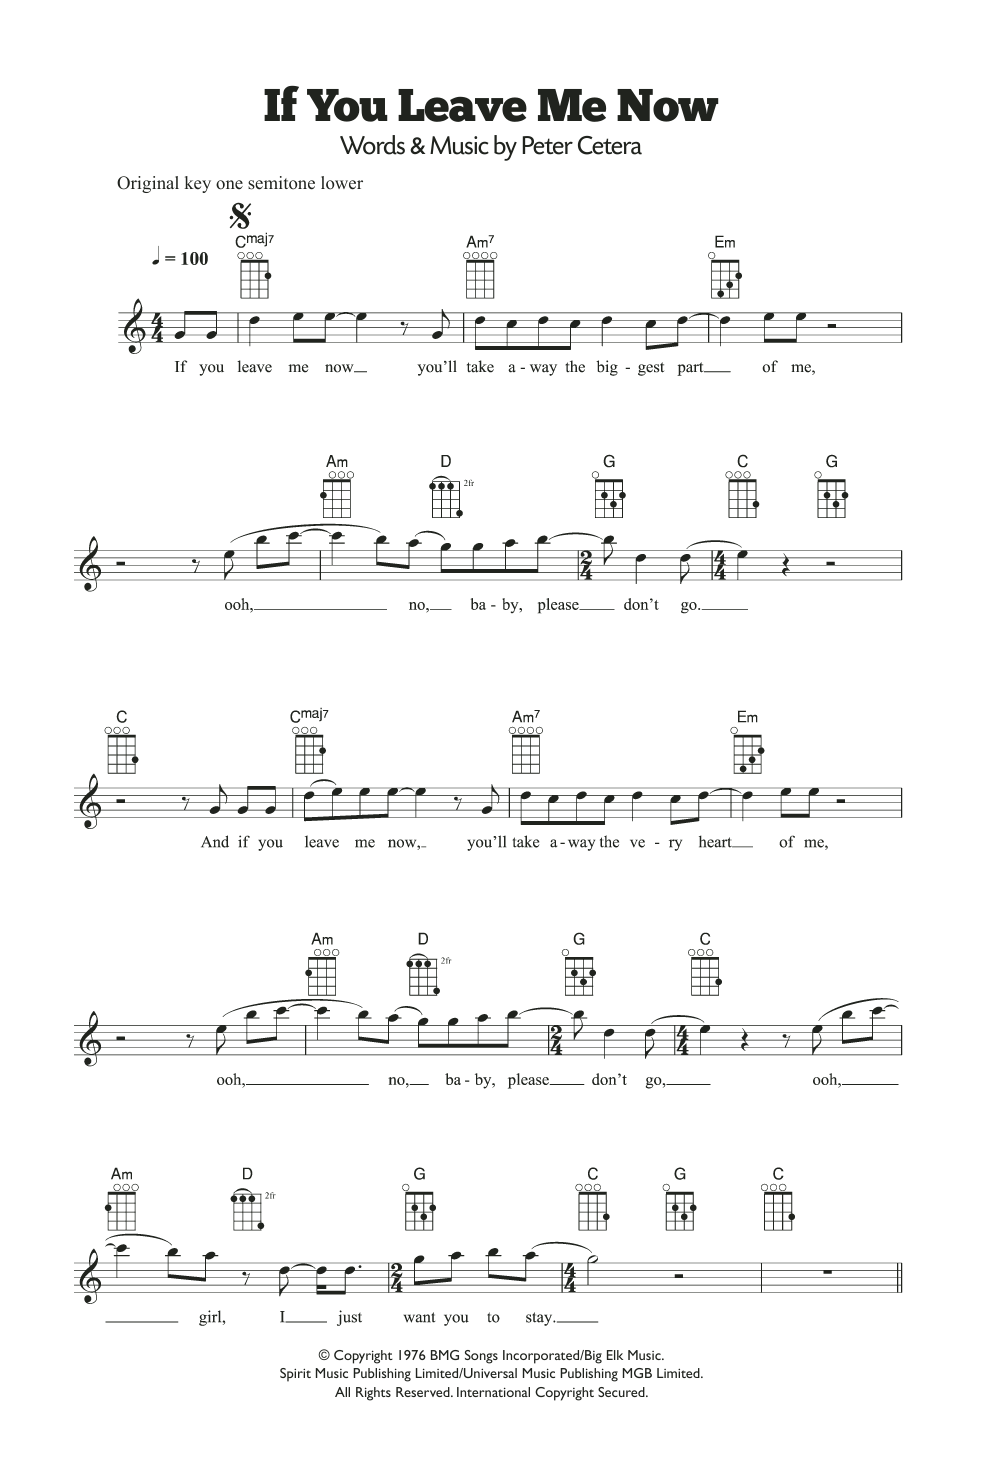 If You Leave Me Now Sheet Music